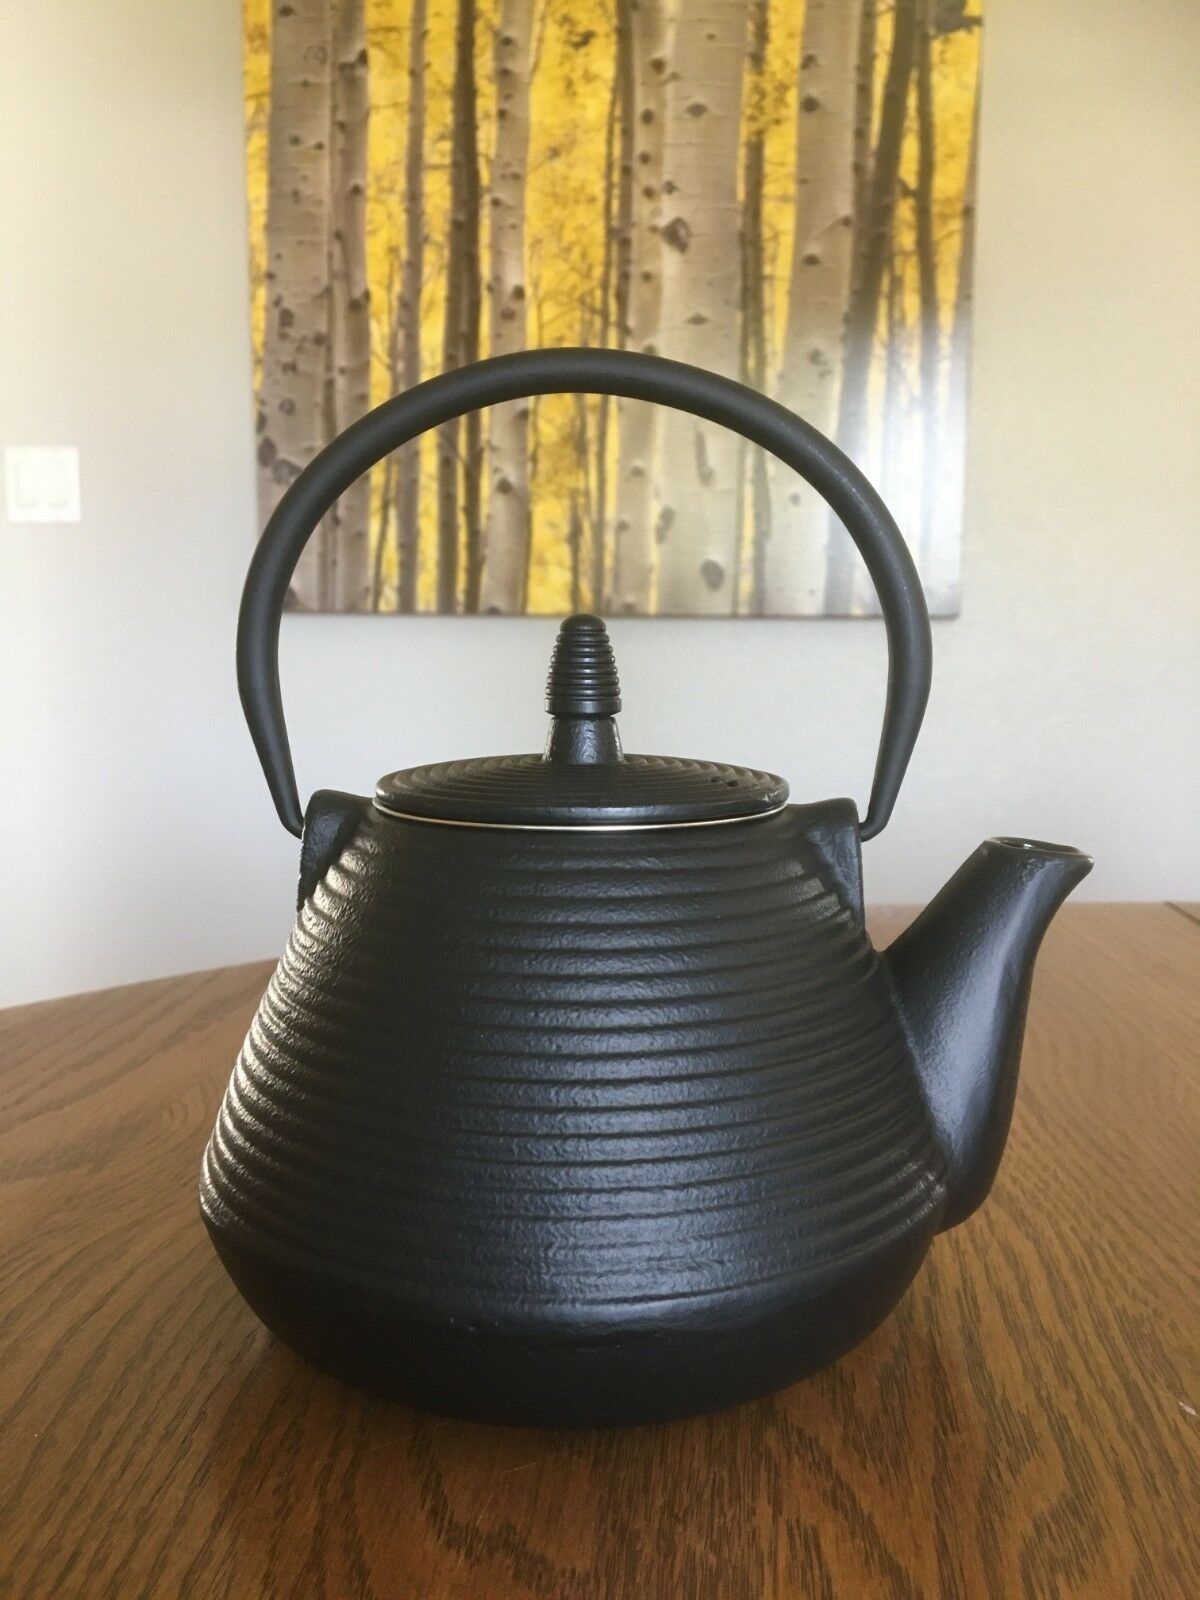 Cast Iron Teapot 33.8 oz 1 liter New!